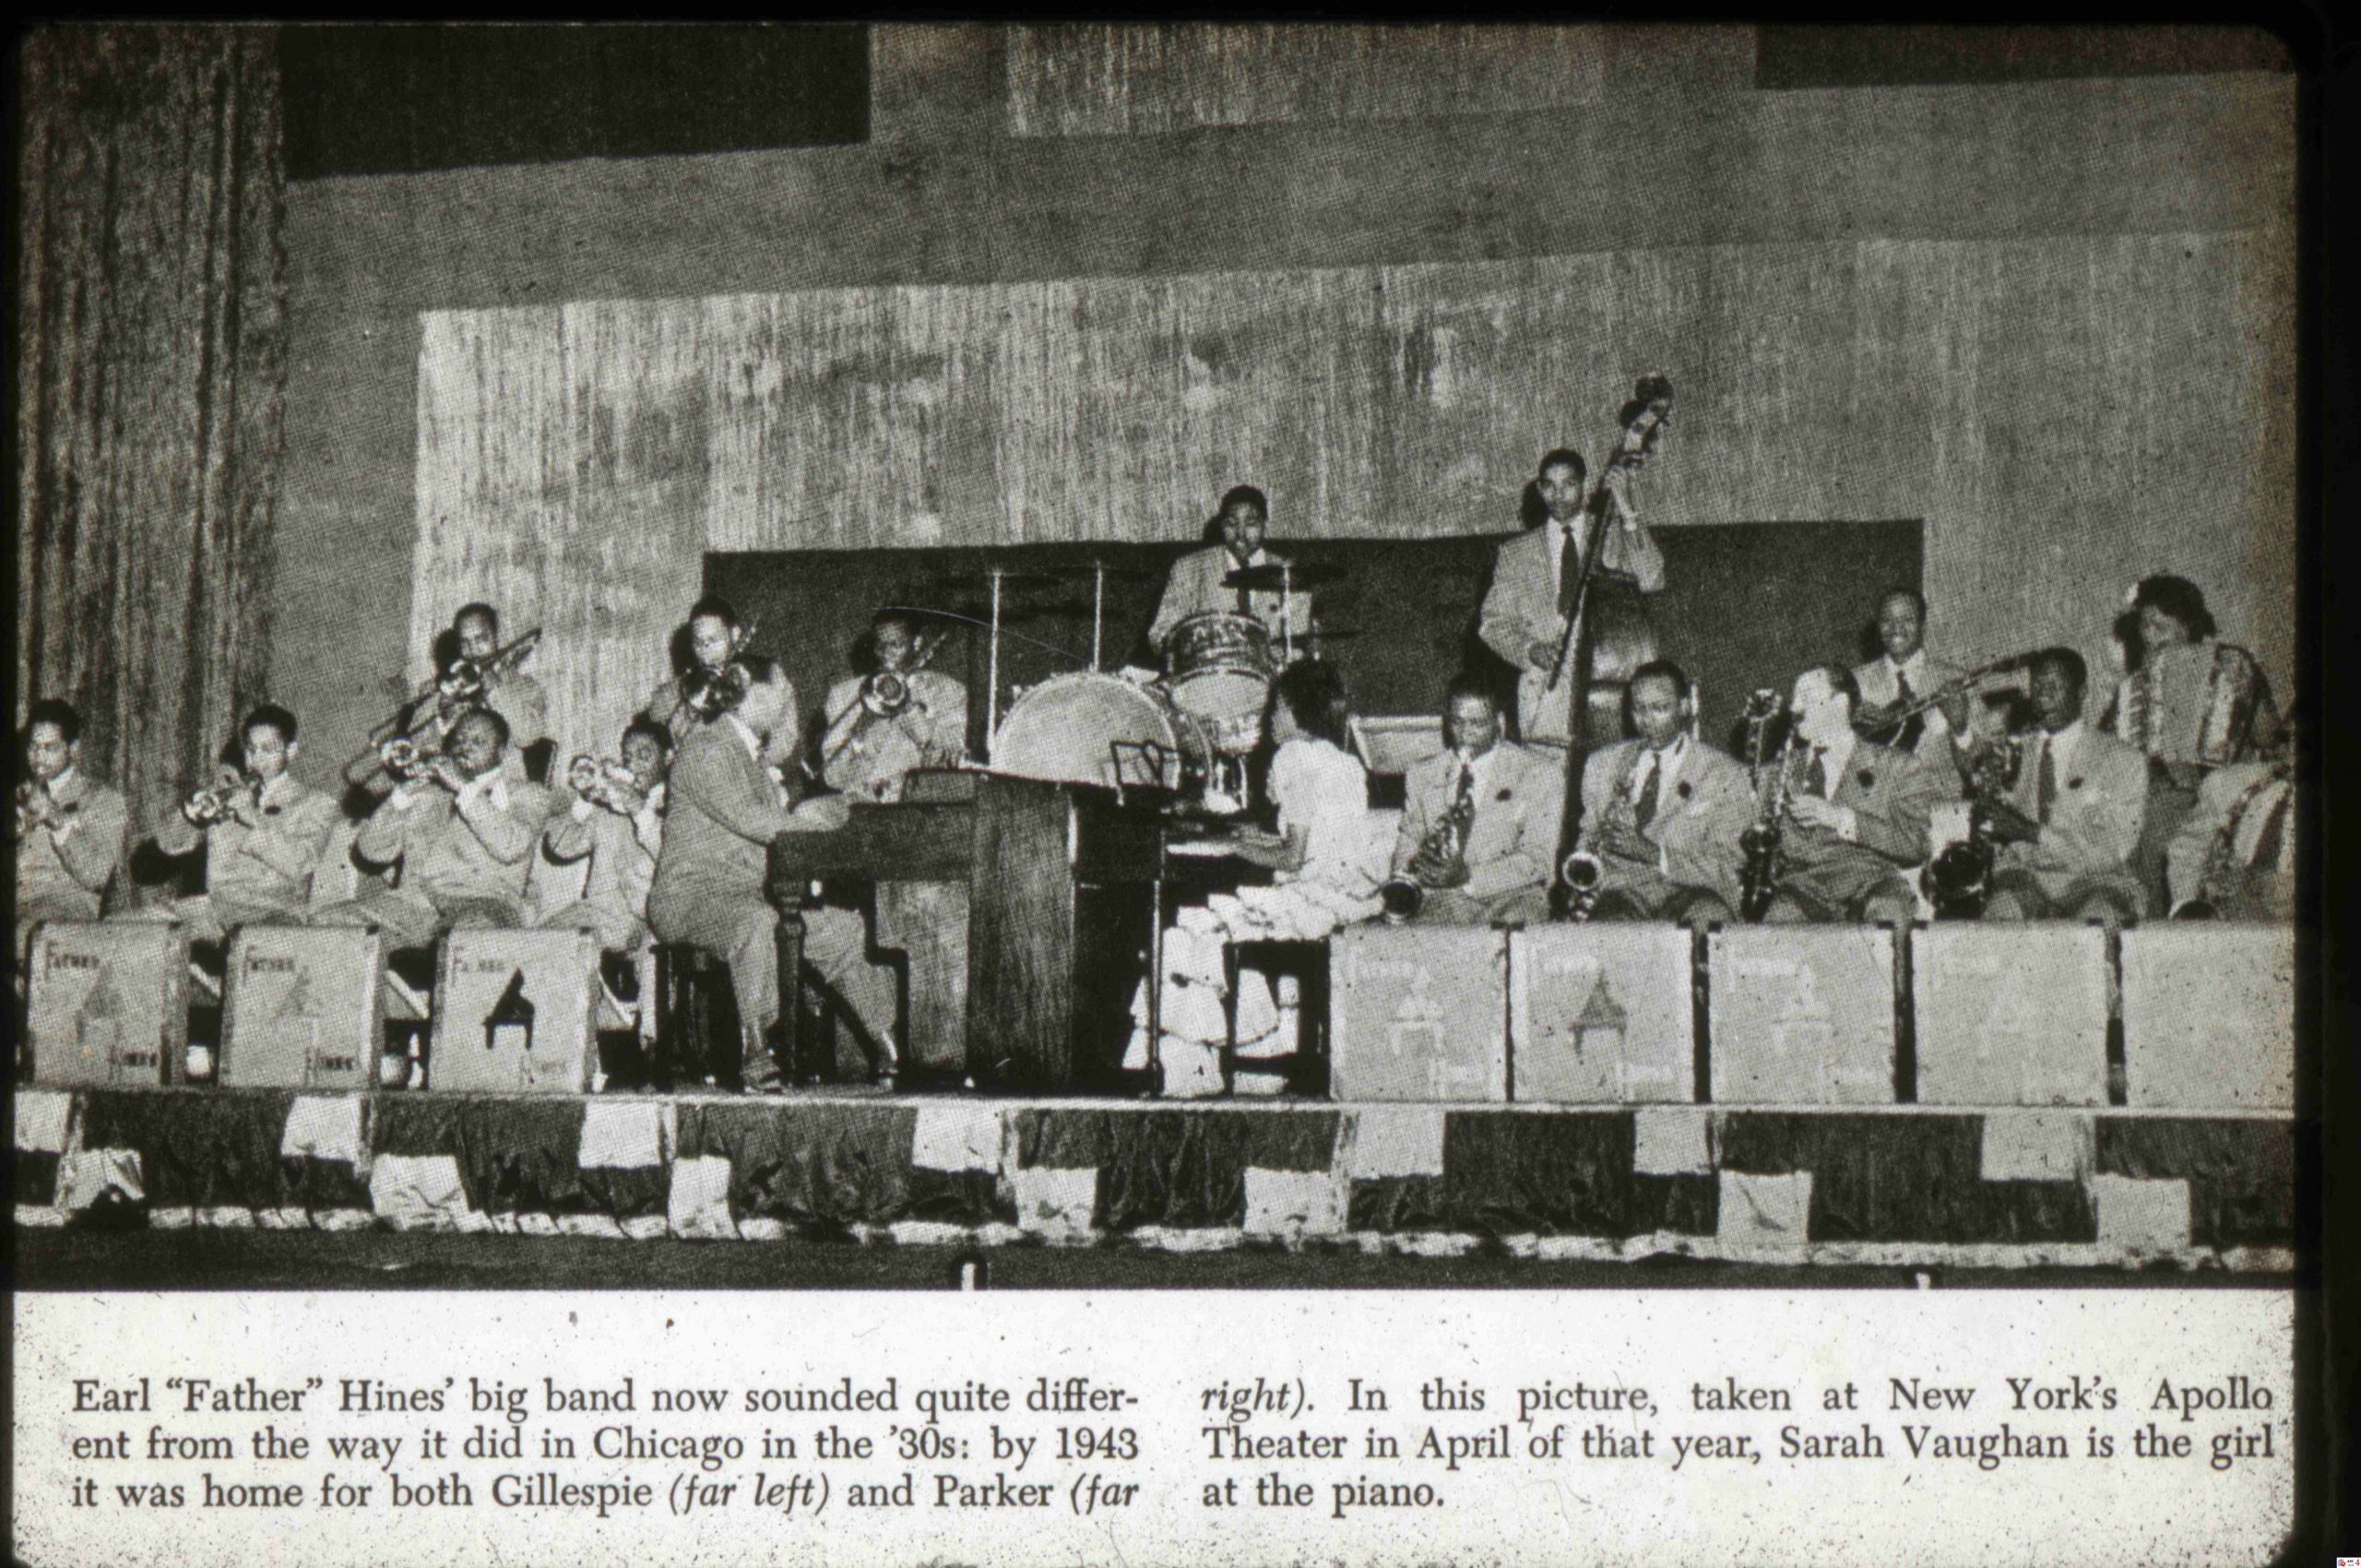 Early Hynes Swing band with Sarah Vaughan on piano